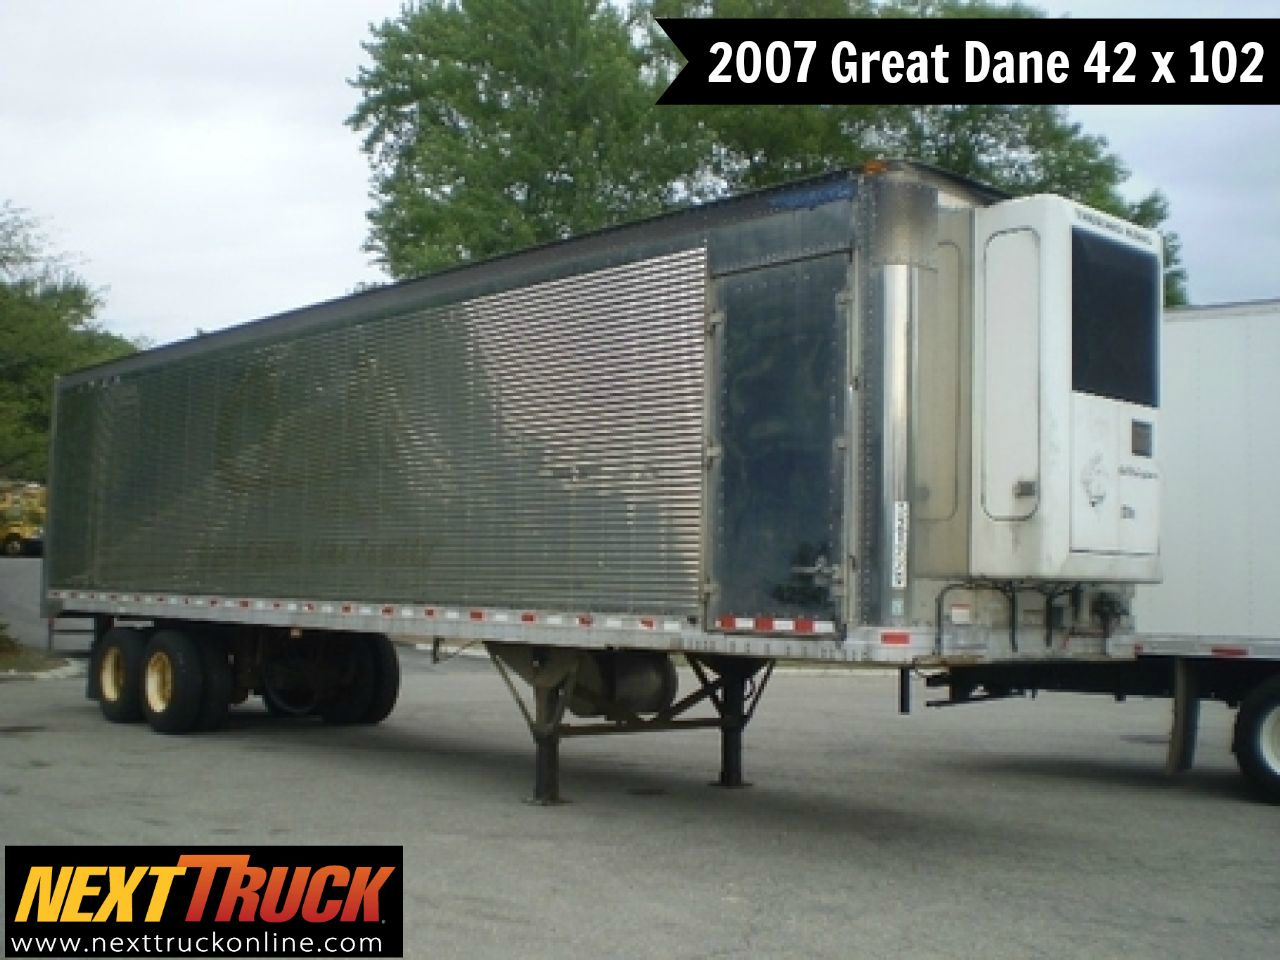 Our Featured Trailer Is A 2007 Great Dane 42 X 102 Refrigerated